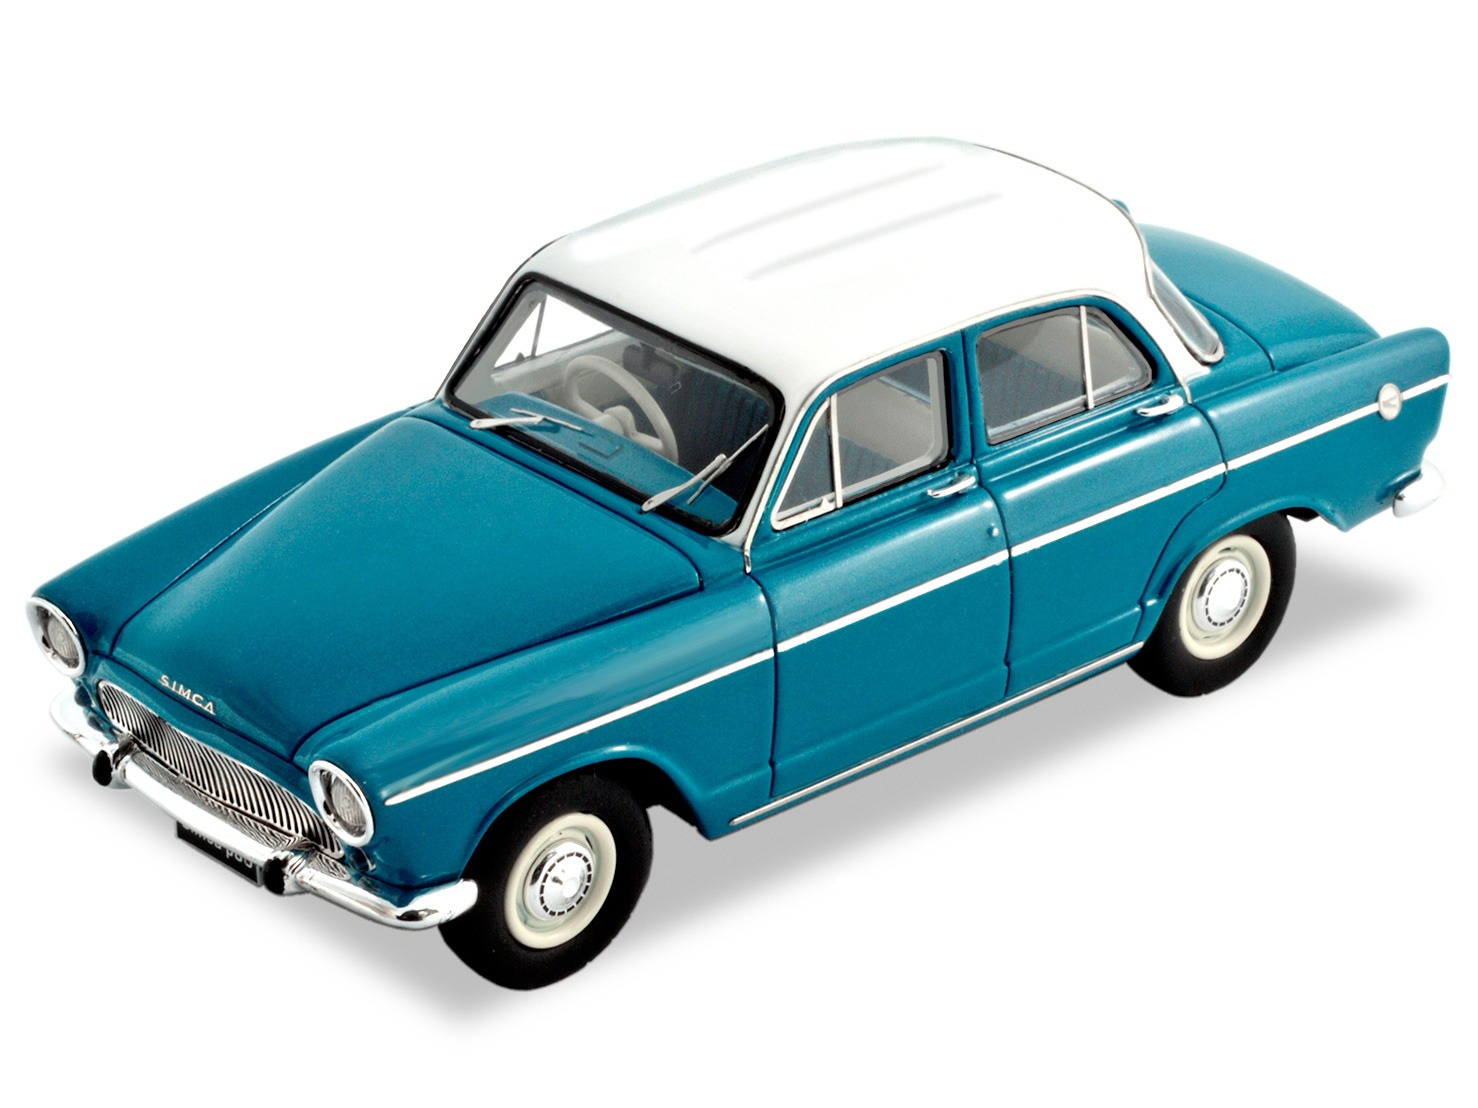 Simca Aronde P60 Sedan – Blue / White